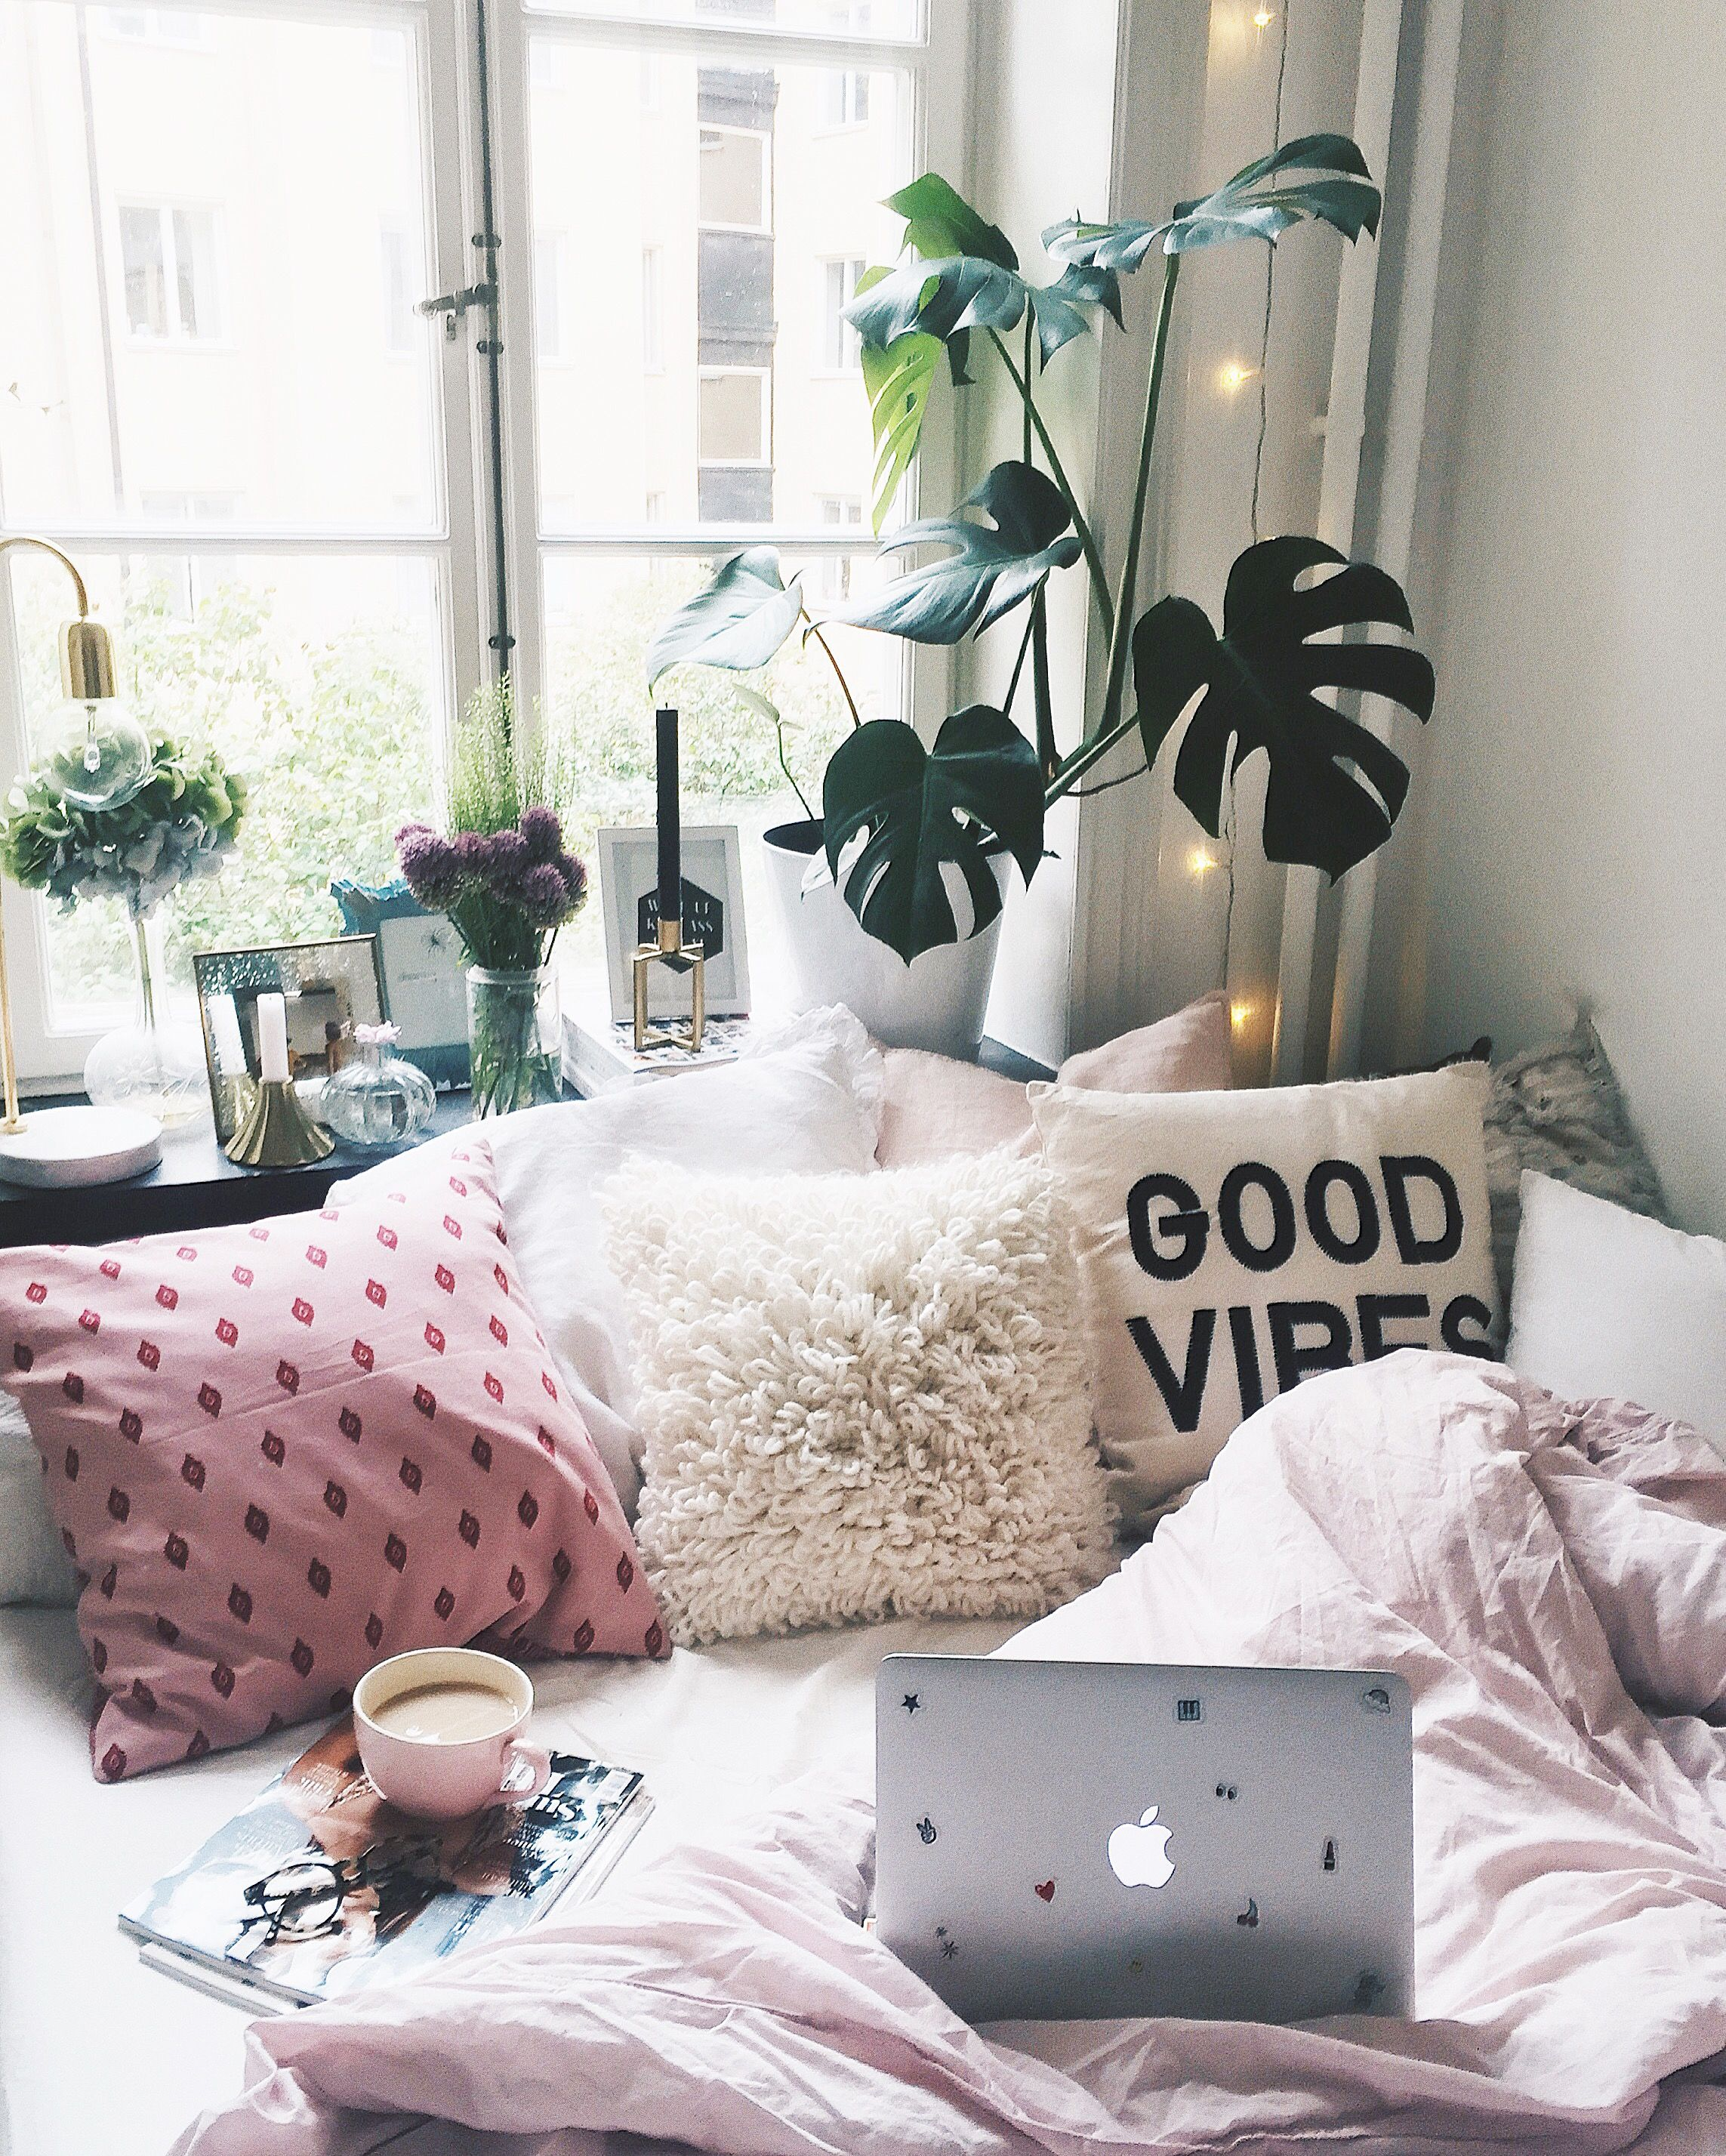 Processed with vsco with hb2 preset home decor inspo for Room decor inspo